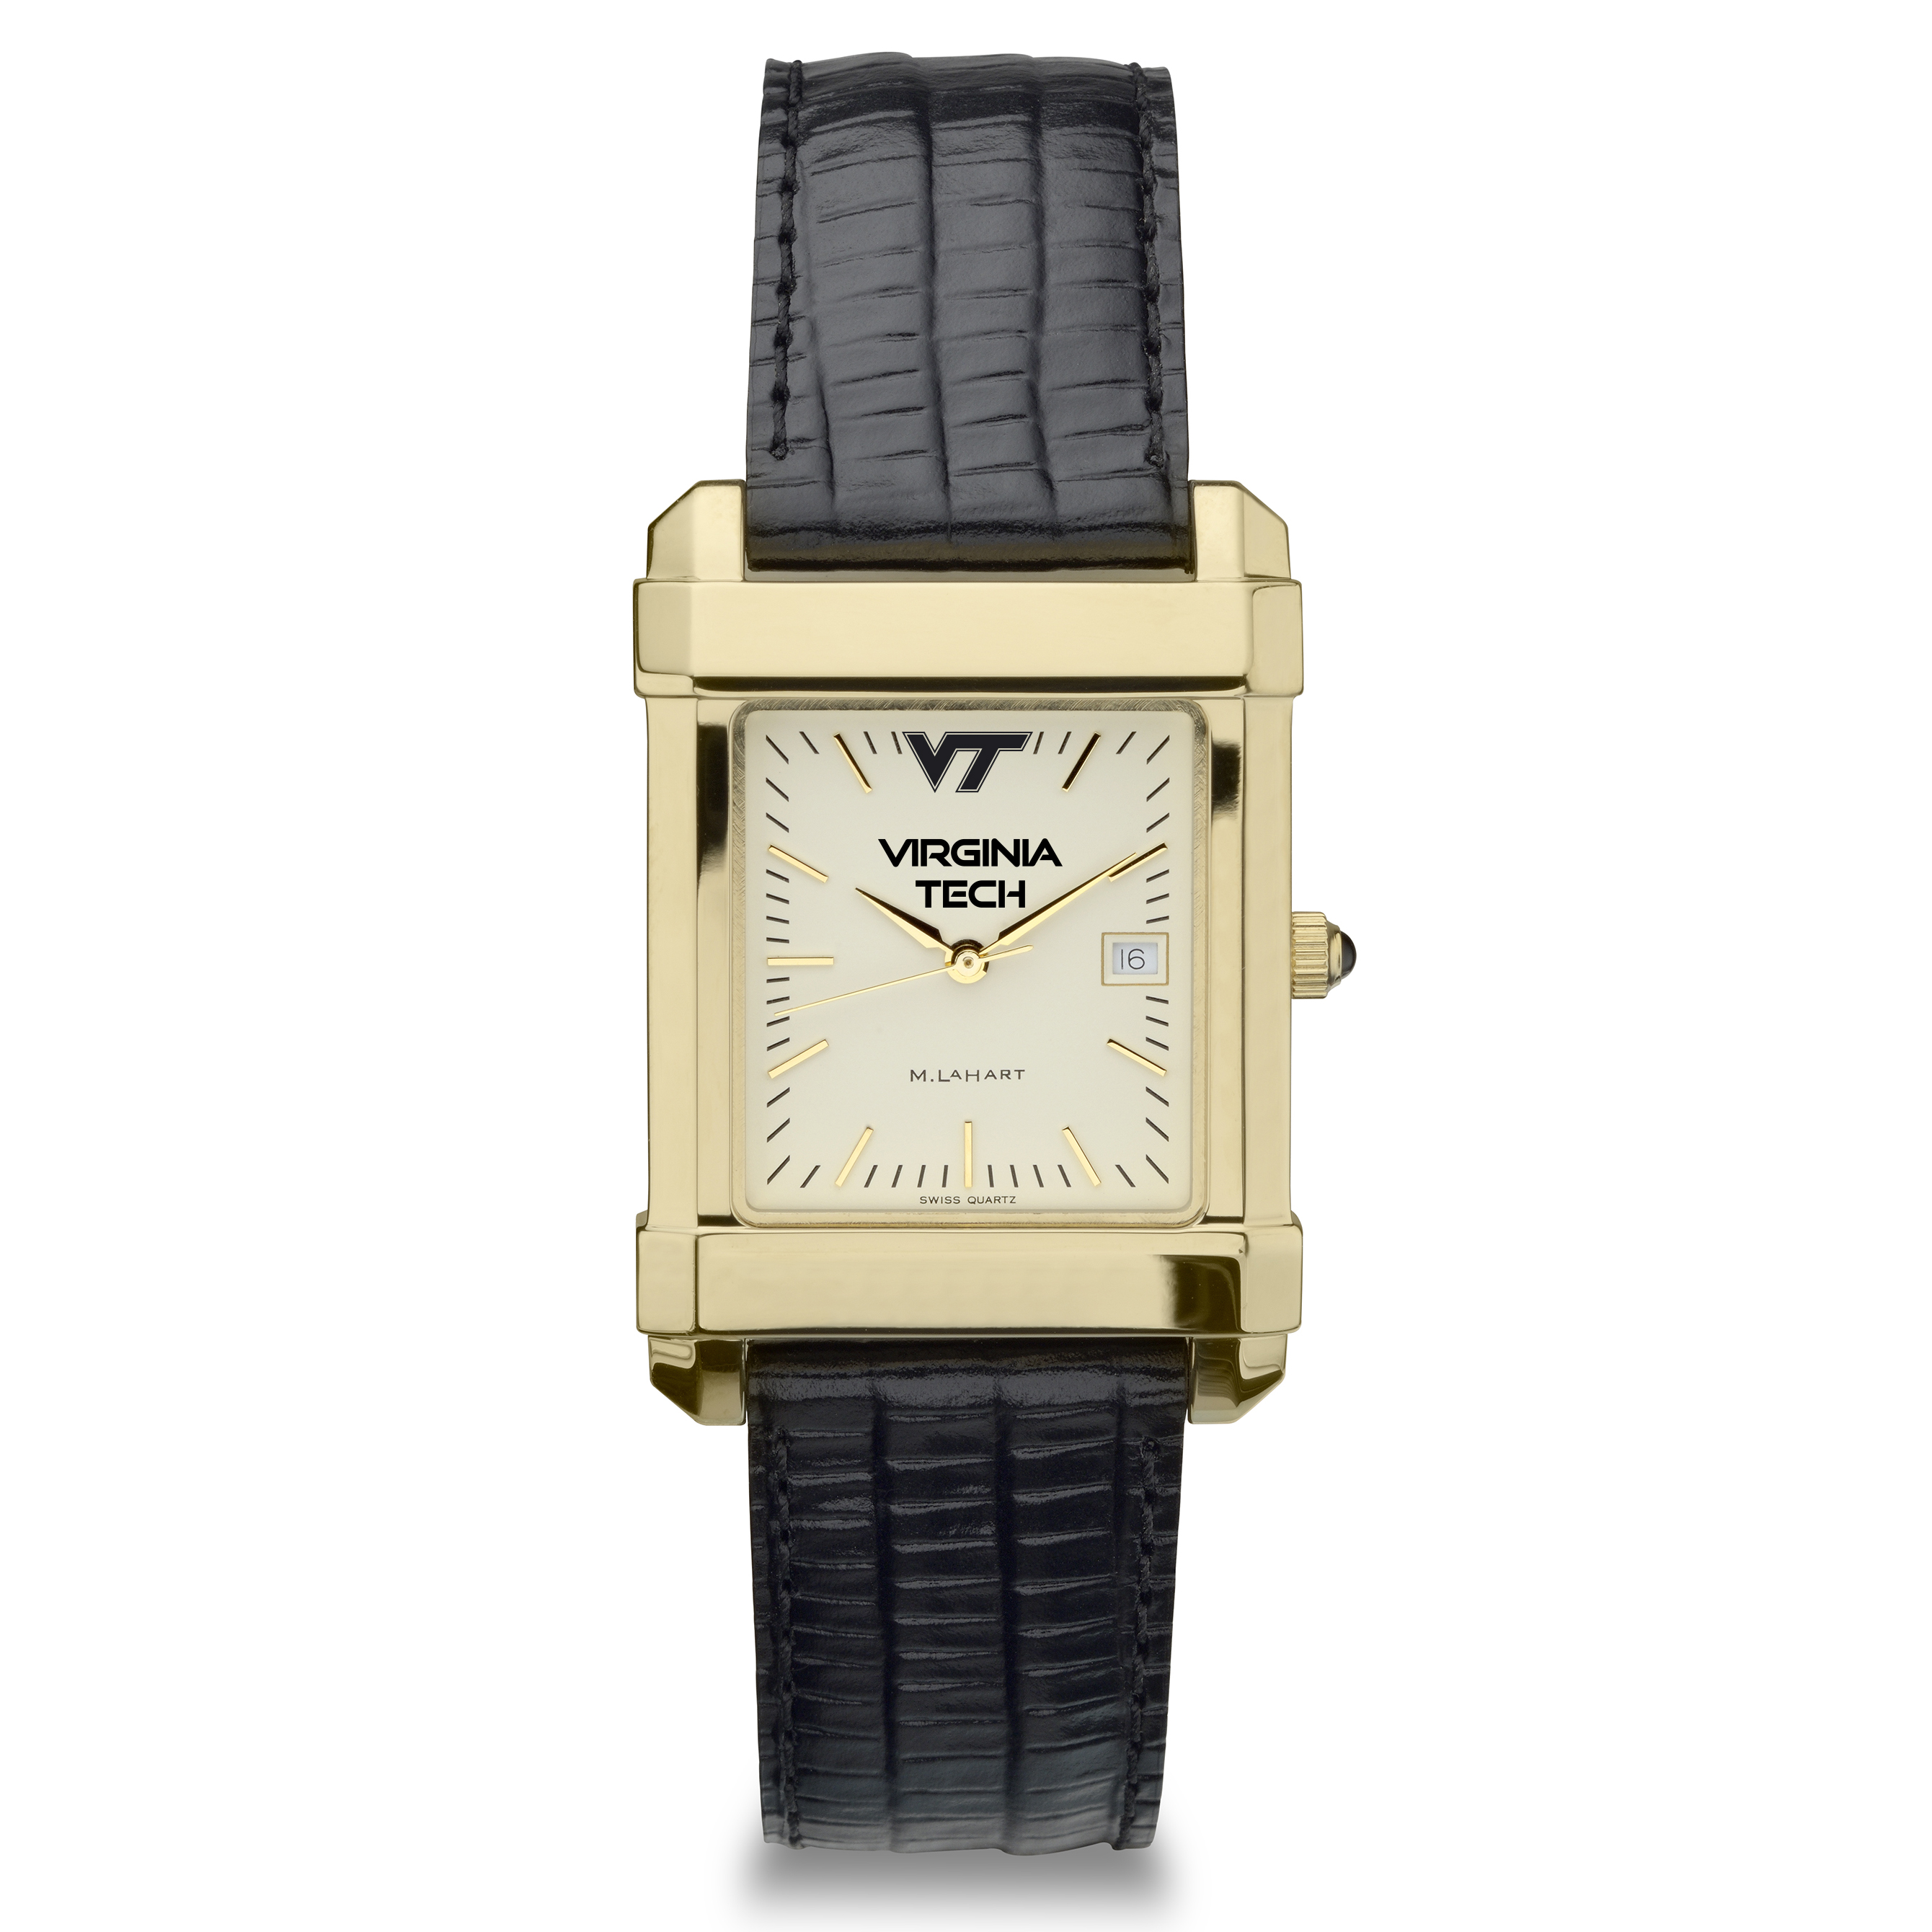 Virgina Tech Men's Gold Quad Watch with Leather Strap - Image 2